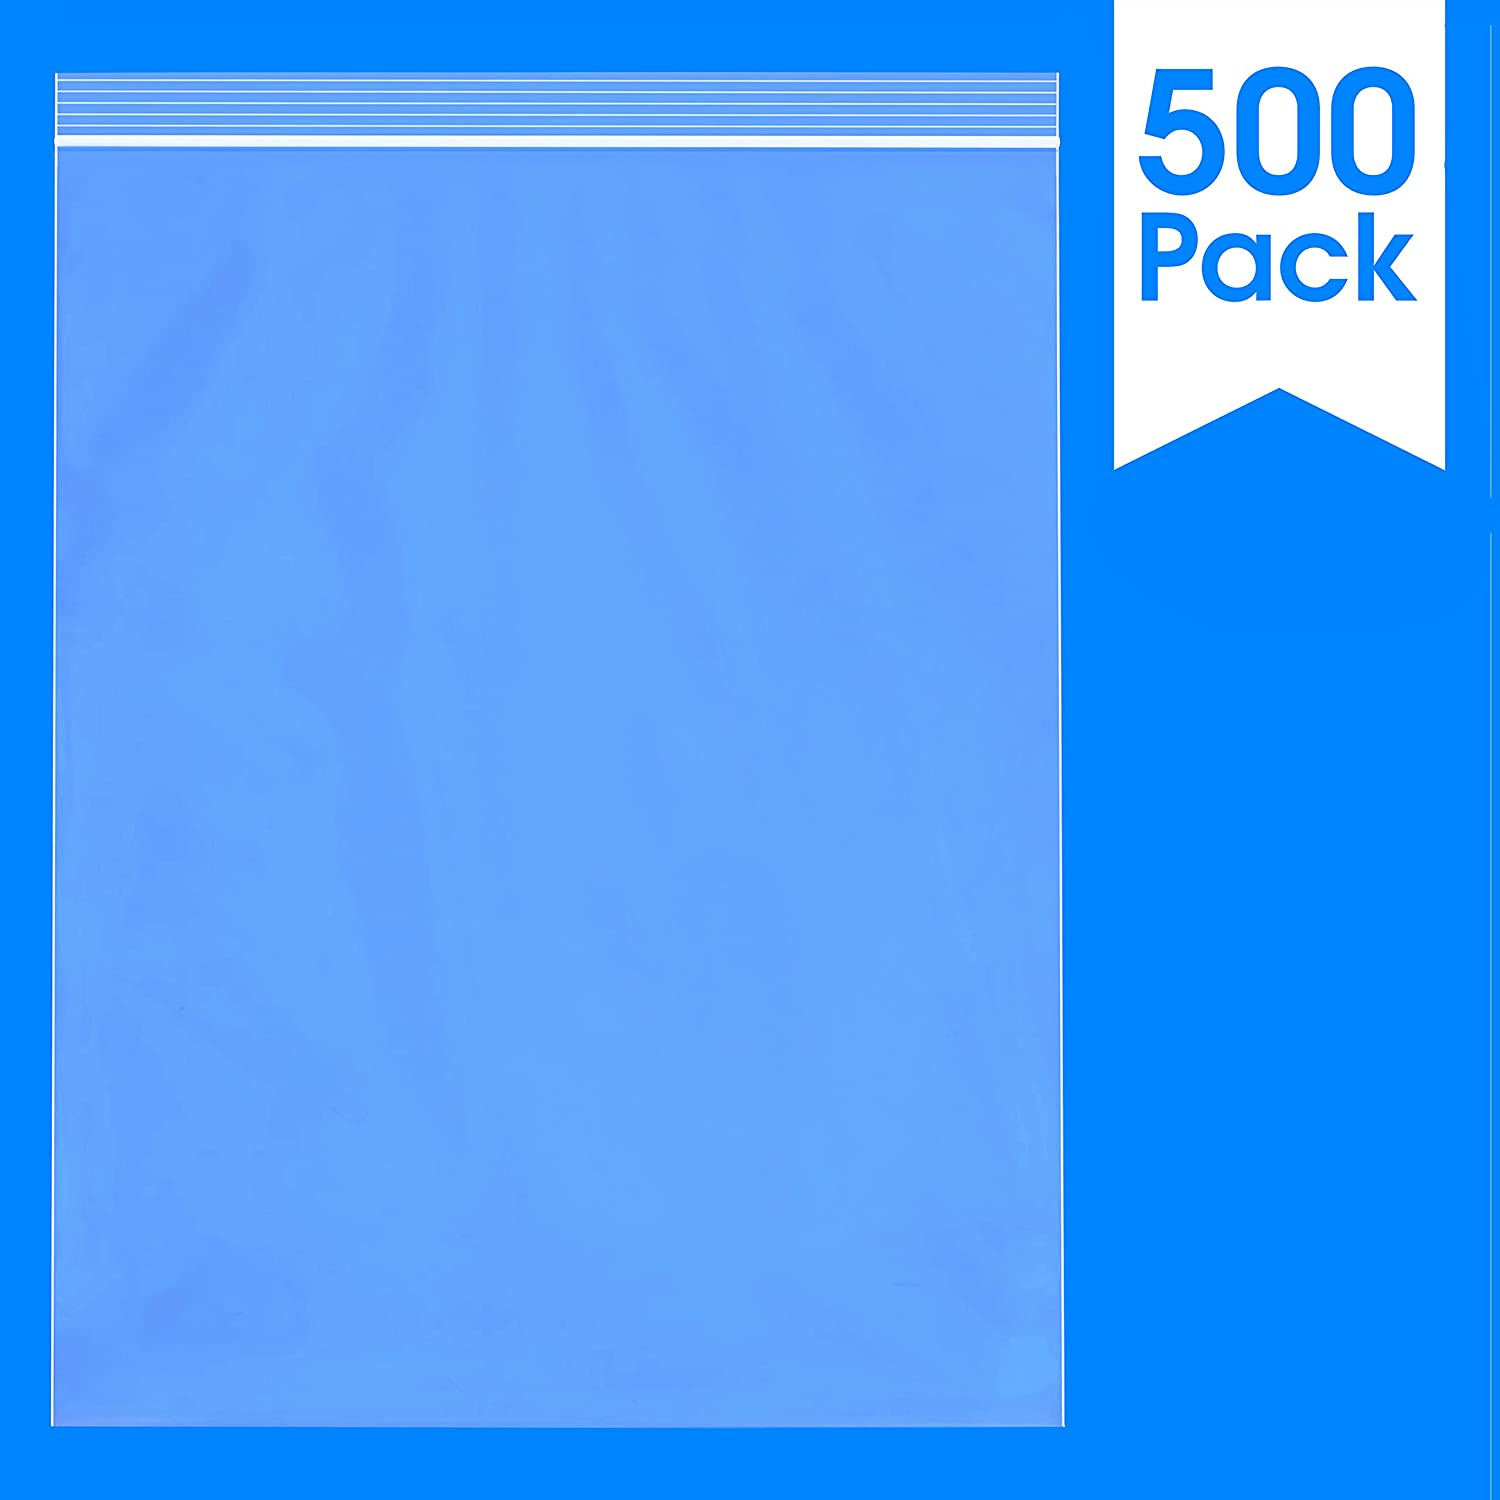 10 X 13 2 Mil Clear Plastic Reclosable Zip Poly Bags with Resealable Lock Seal Zipper by Spartan Industrial 500 Count More Sizes Available